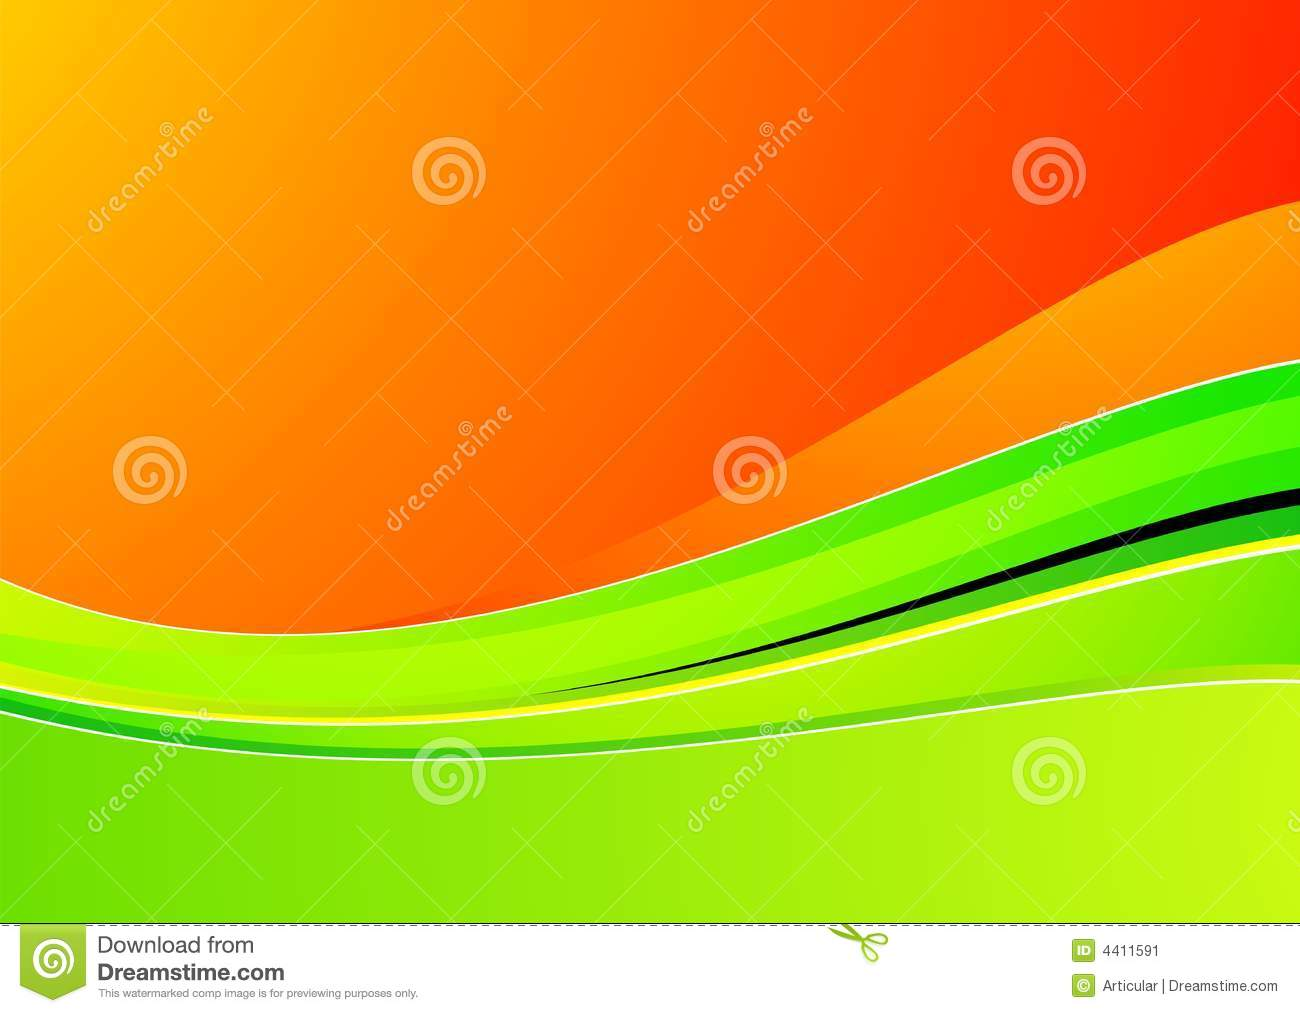 Green wave on orange background for design